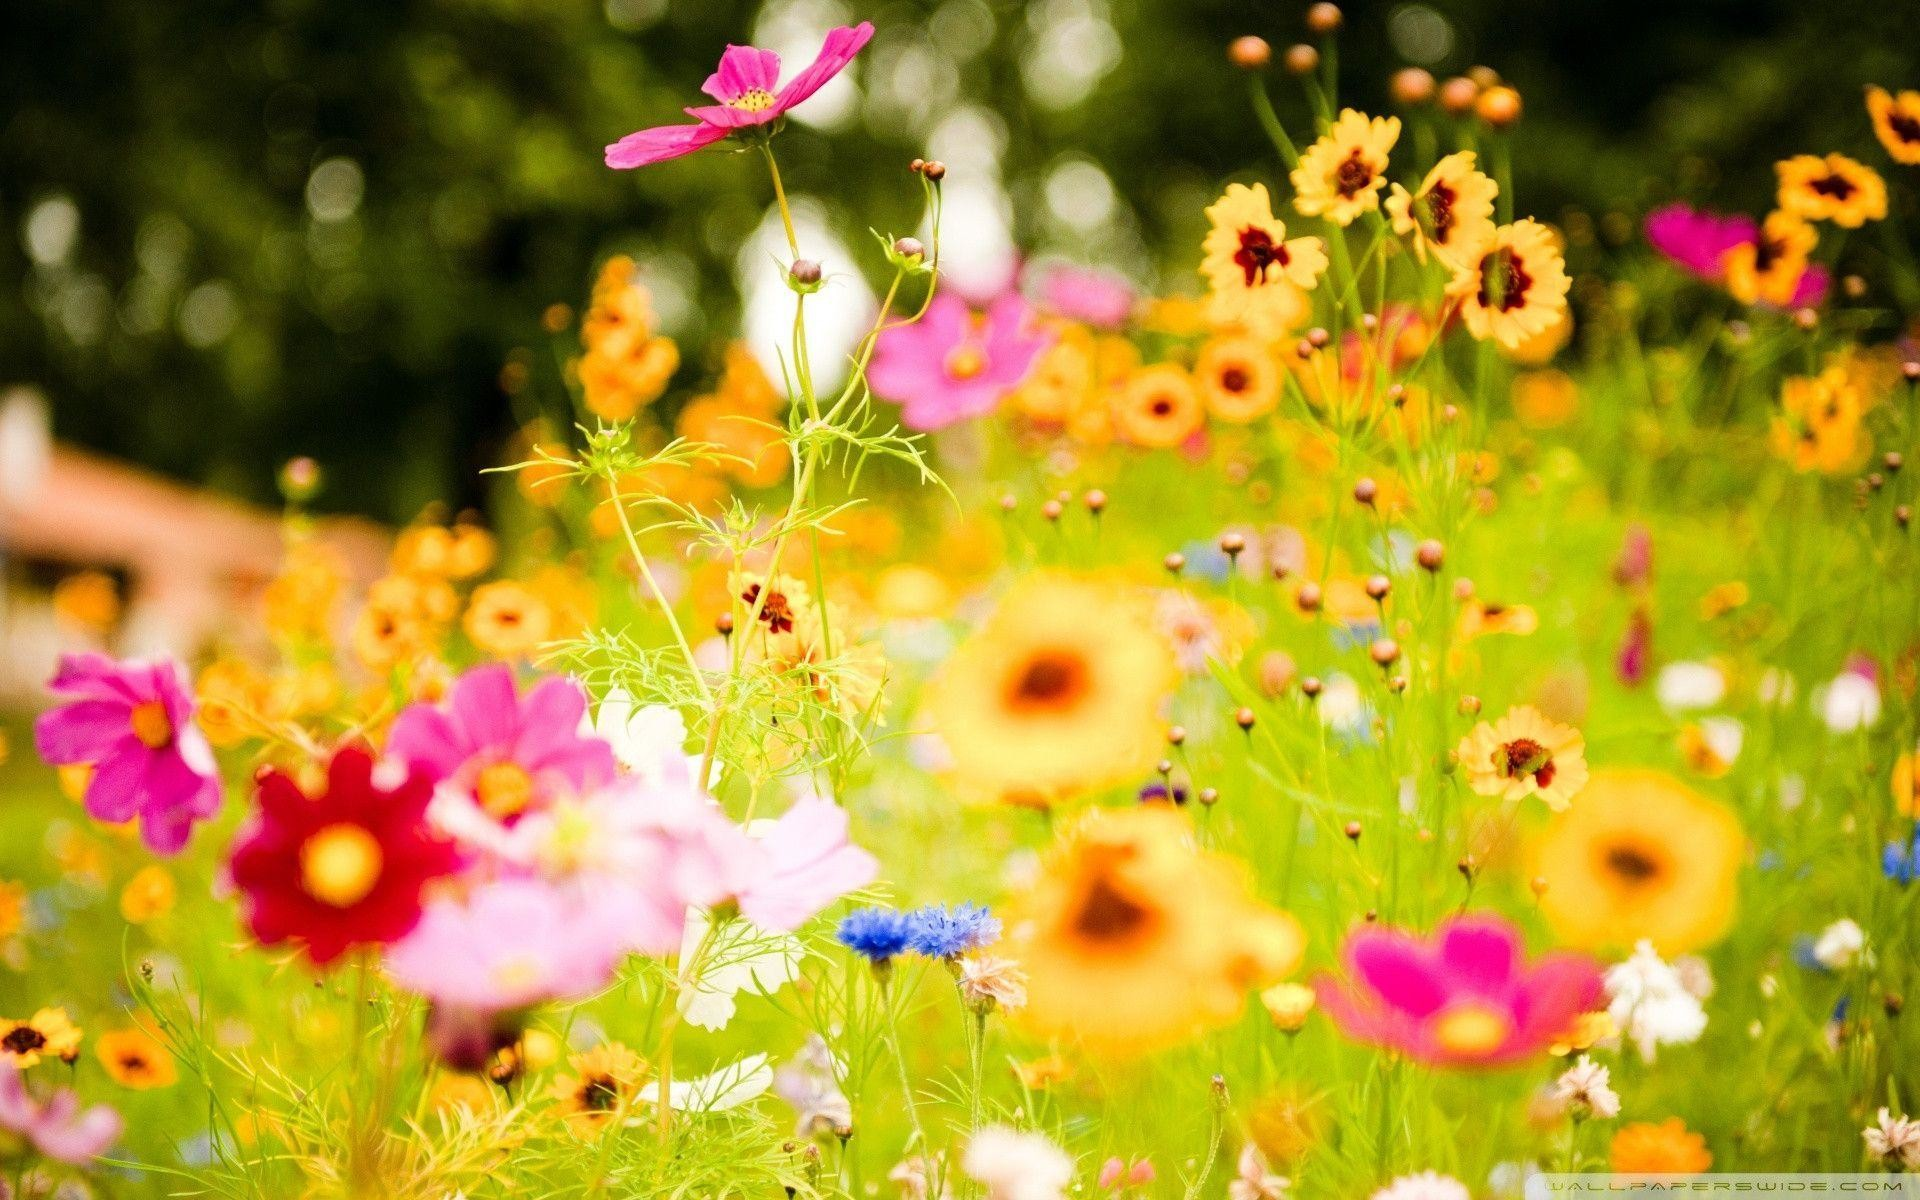 Res: 1920x1200, Summer Backgrounds Flowers Images 6 HD Wallpapers | Hdimges.